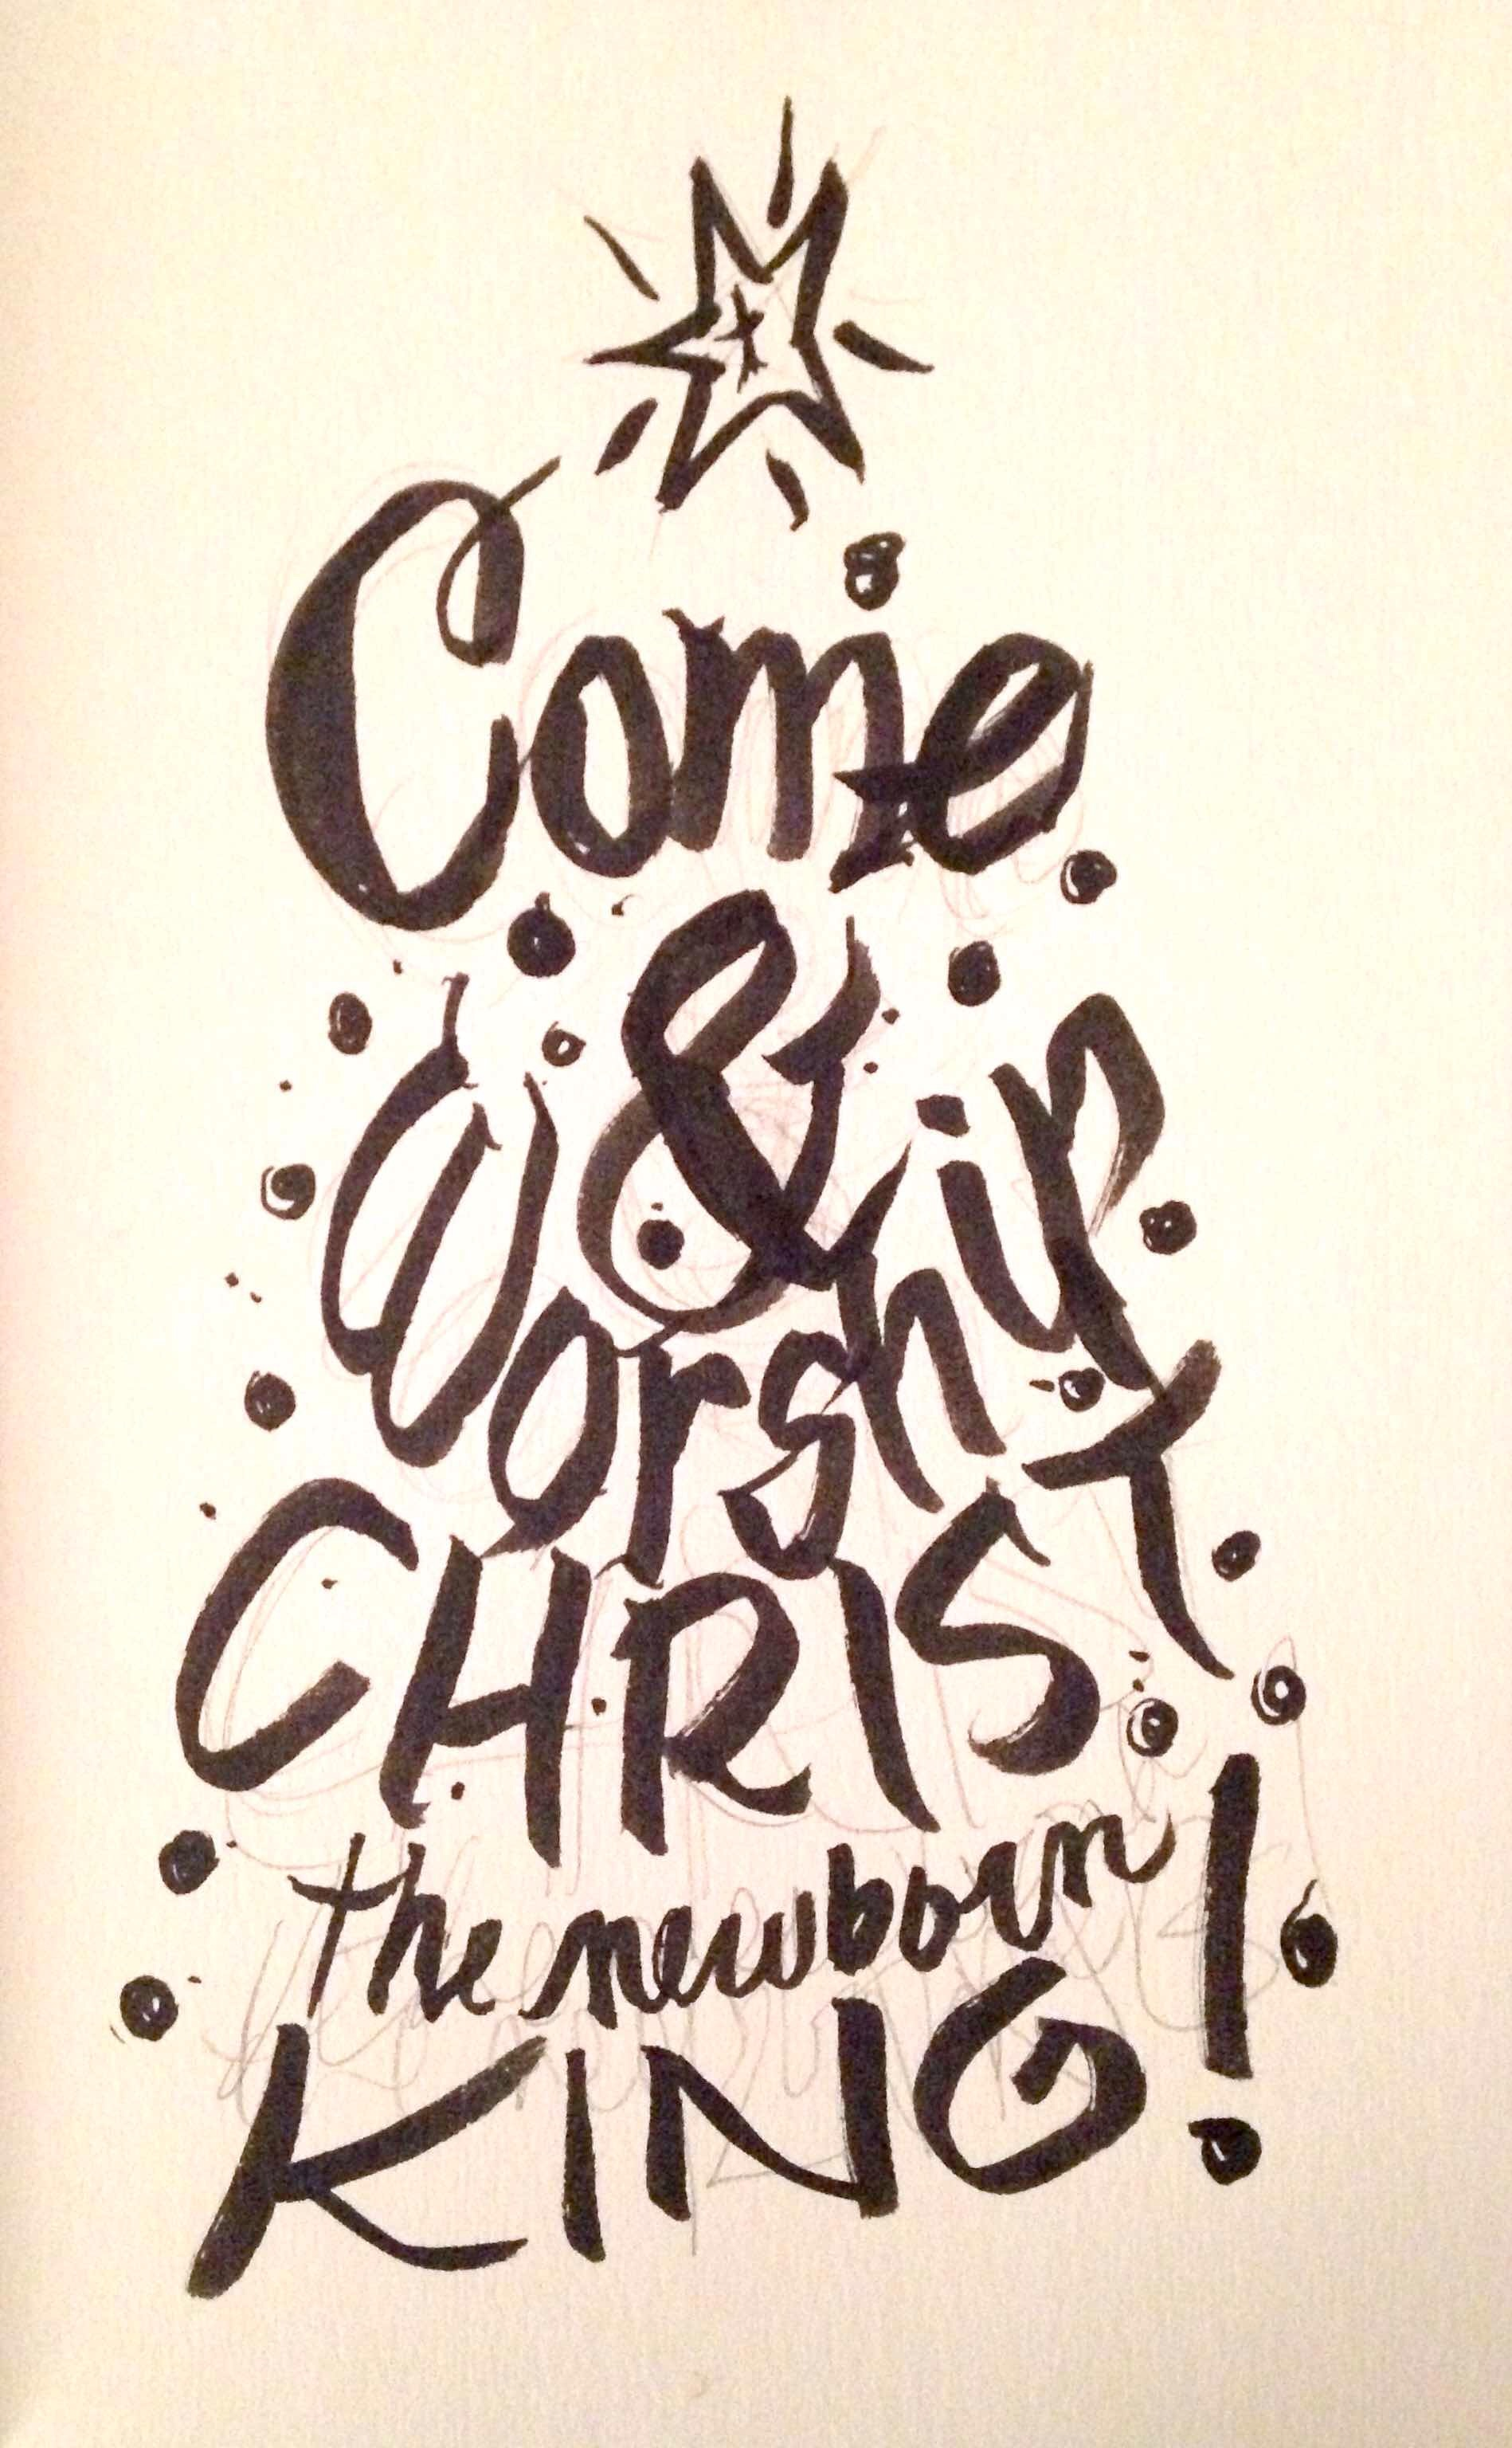 Come and worship Christ the newborn king